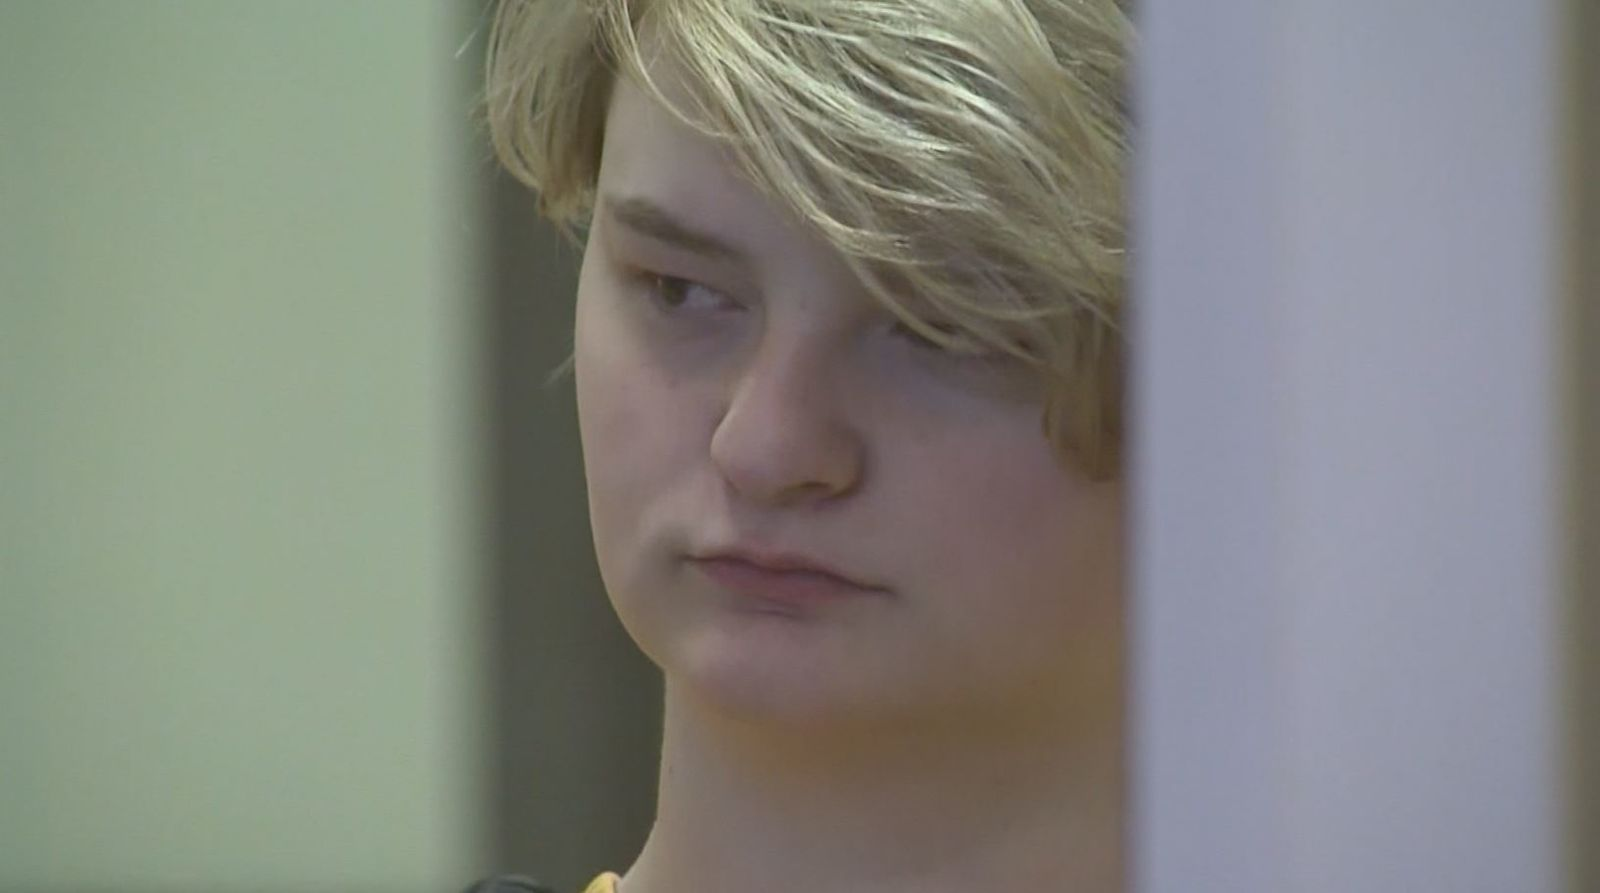 Authorities say 18-year-old Denali Brehmer gathered a group of friends to kill 19-year-old Cynthia Hoffman and record it for a man who wasn't what he claimed. (CNN Newssource)